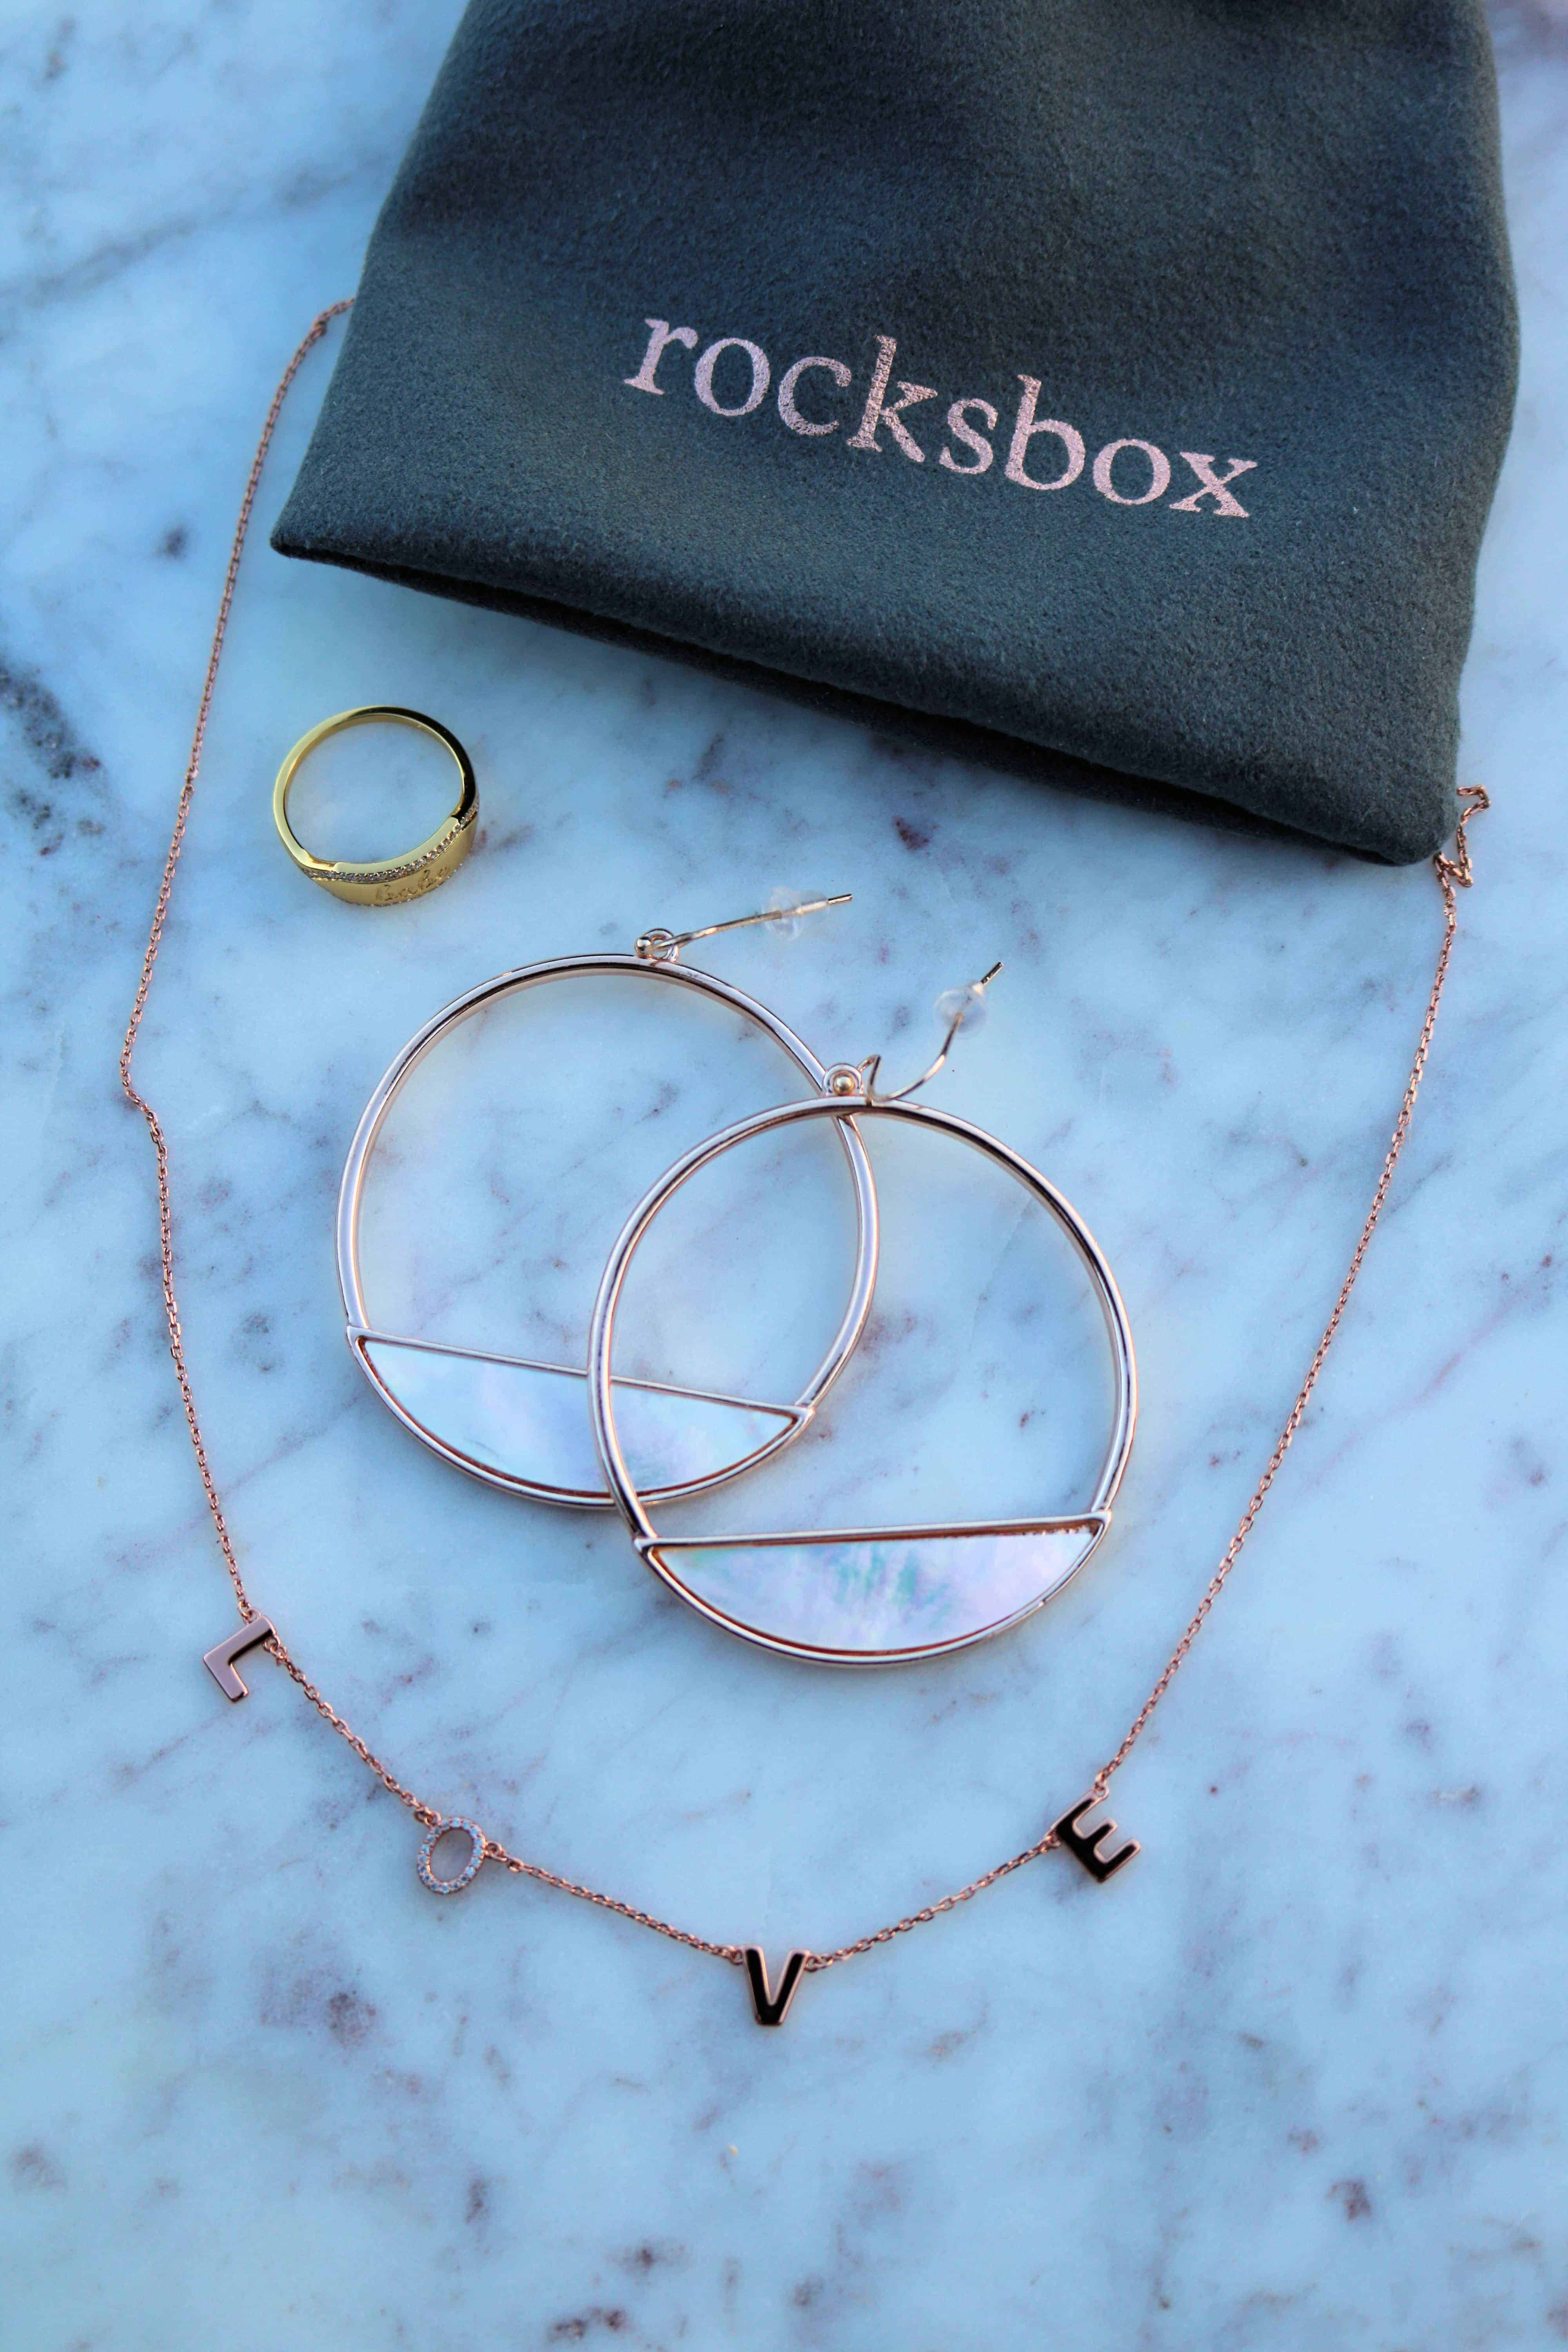 Curious about Rocksbox jewelry subscription box? Then check out my honest 6-month Rocksbox review and unboxing. I'm sharing how it works, whether or not I think it's worth the money, and if you're interested, try it out for free with my promo code! #rocksbox #rocksboxreview #jewelry